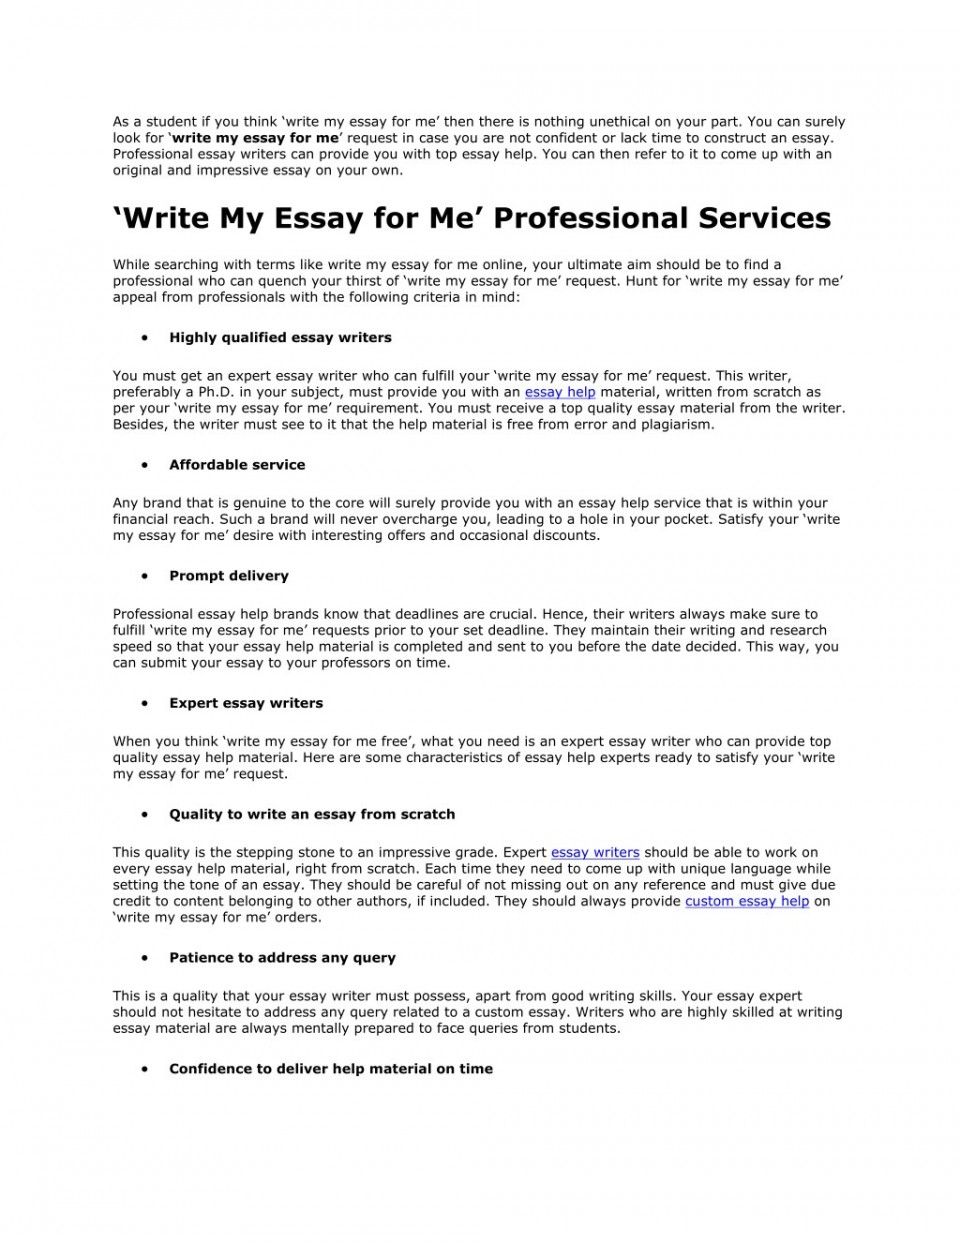 017 Write My Essay For Me Example As Student If You Think Surprising Me.org Free Online Uk 960